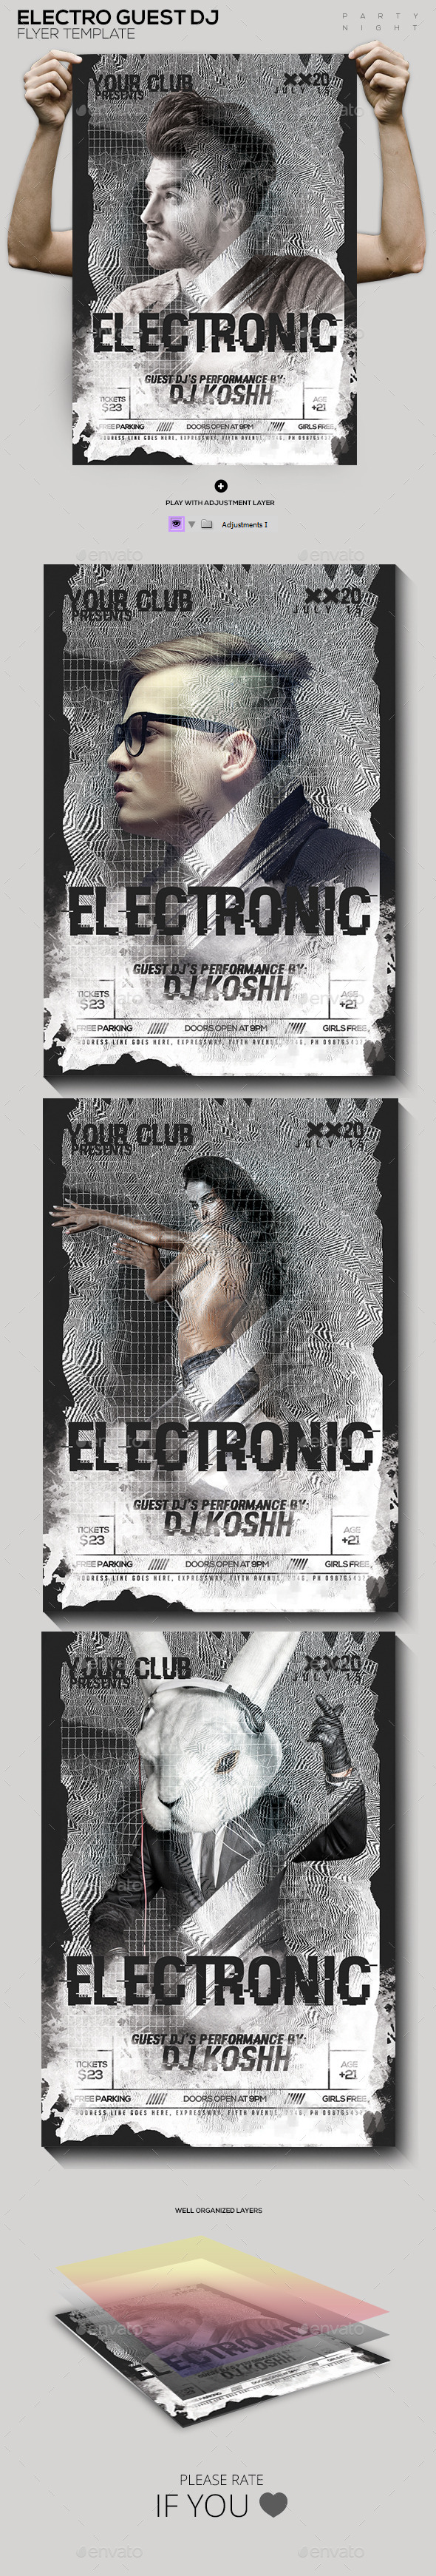 Electro Guest Dj Flyer Template  - Clubs & Parties Events